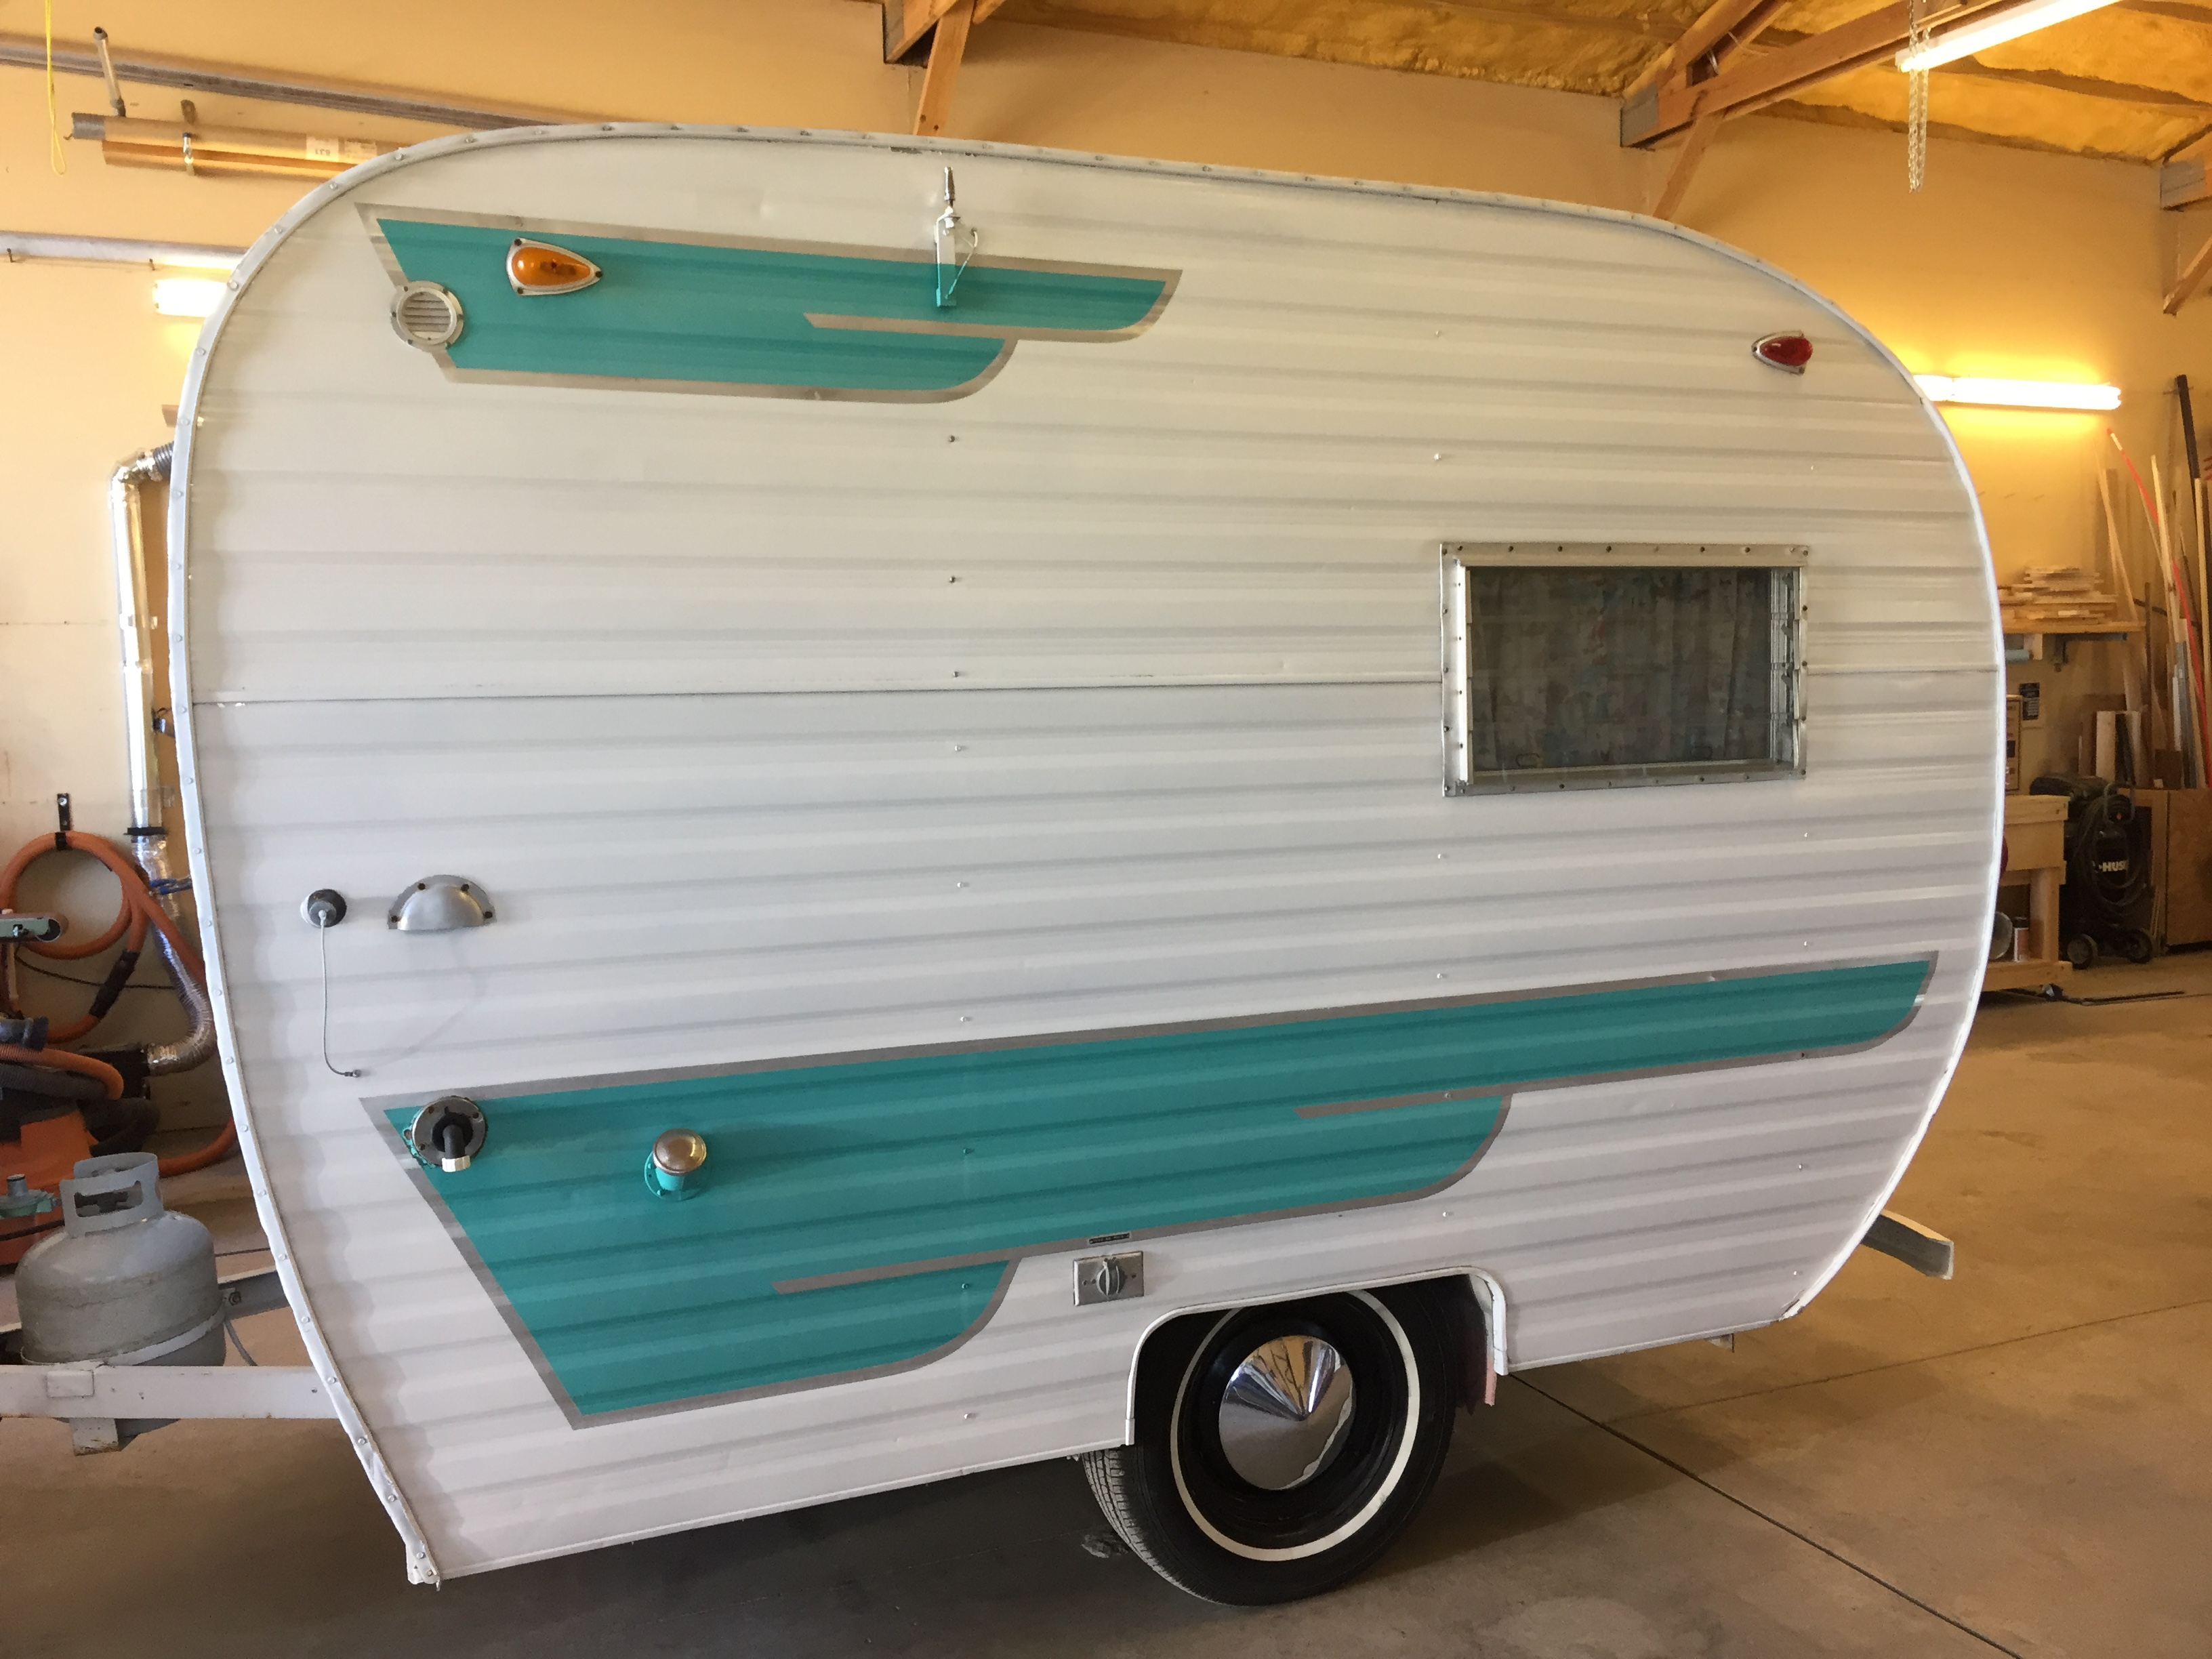 Best Vintage Trailer Restoration & Repair | Specializing